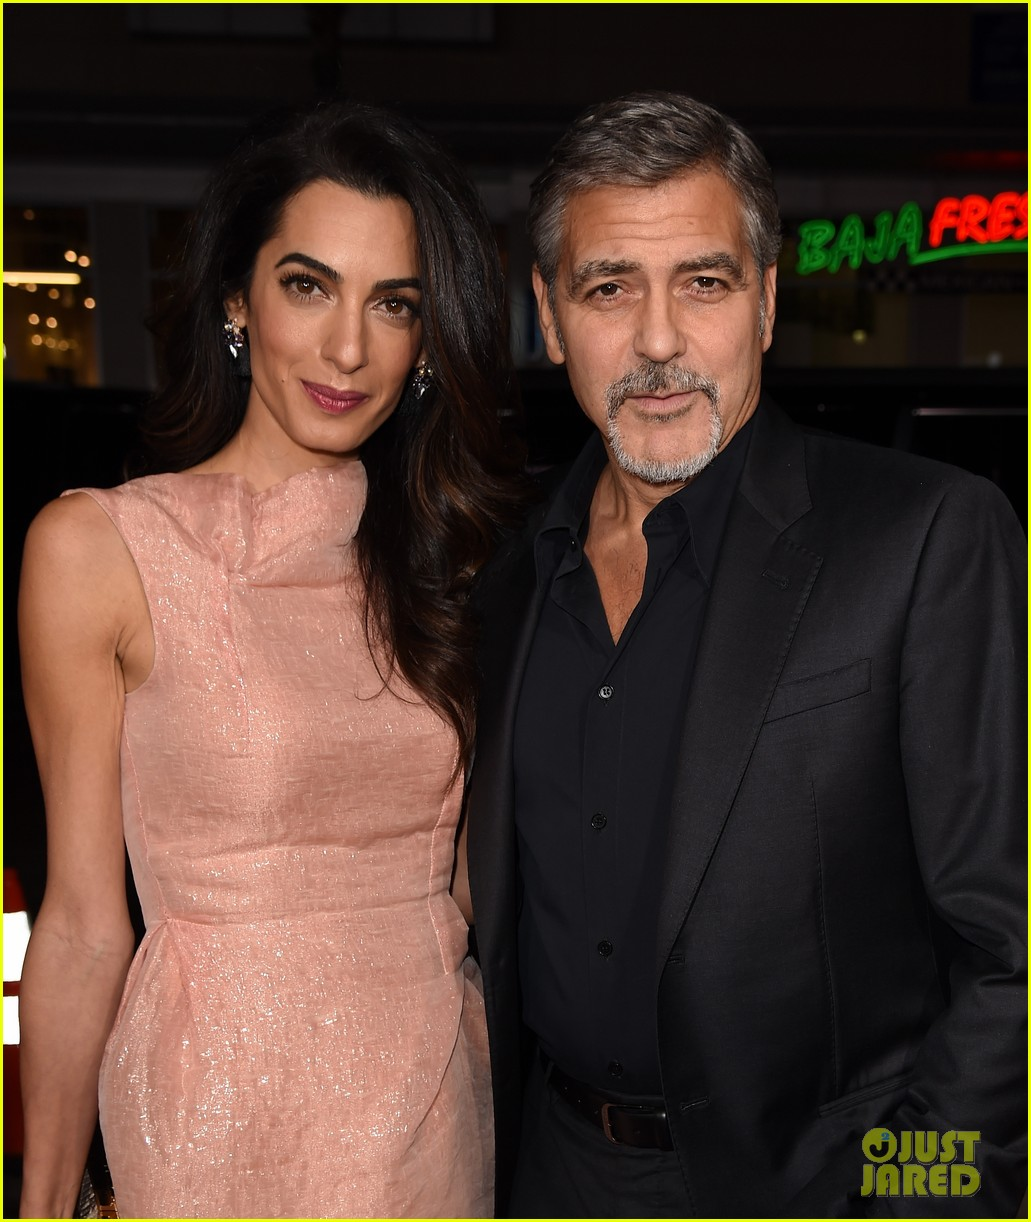 George clooney gets wife amals support at our brand is crisis premiere